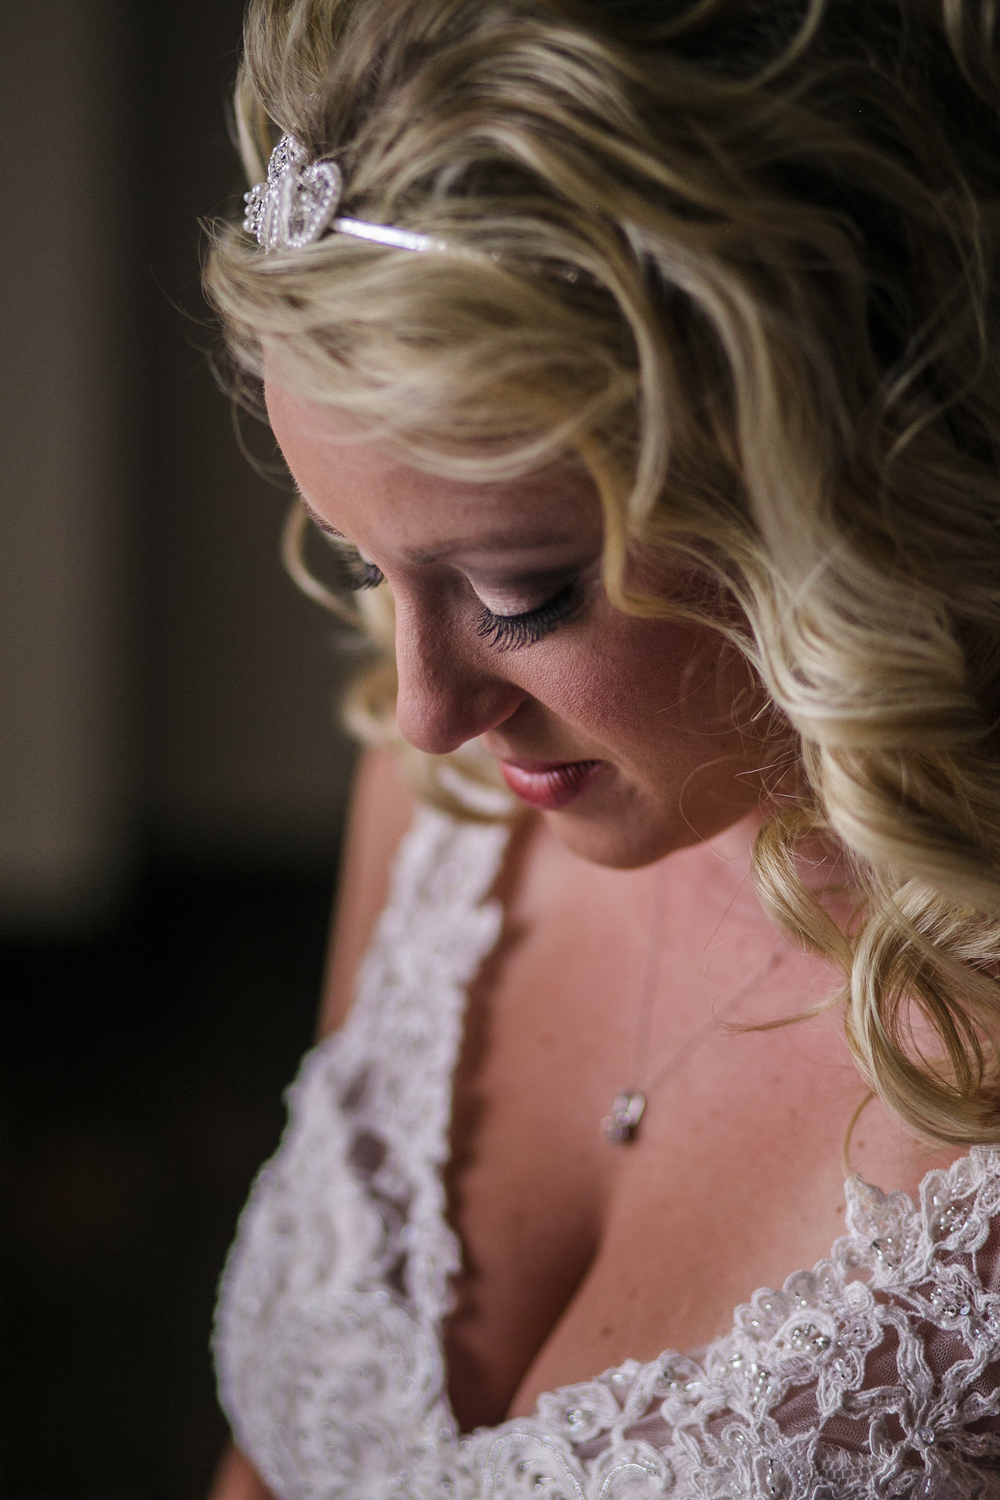 Harris wedding (61 of 72).JPG